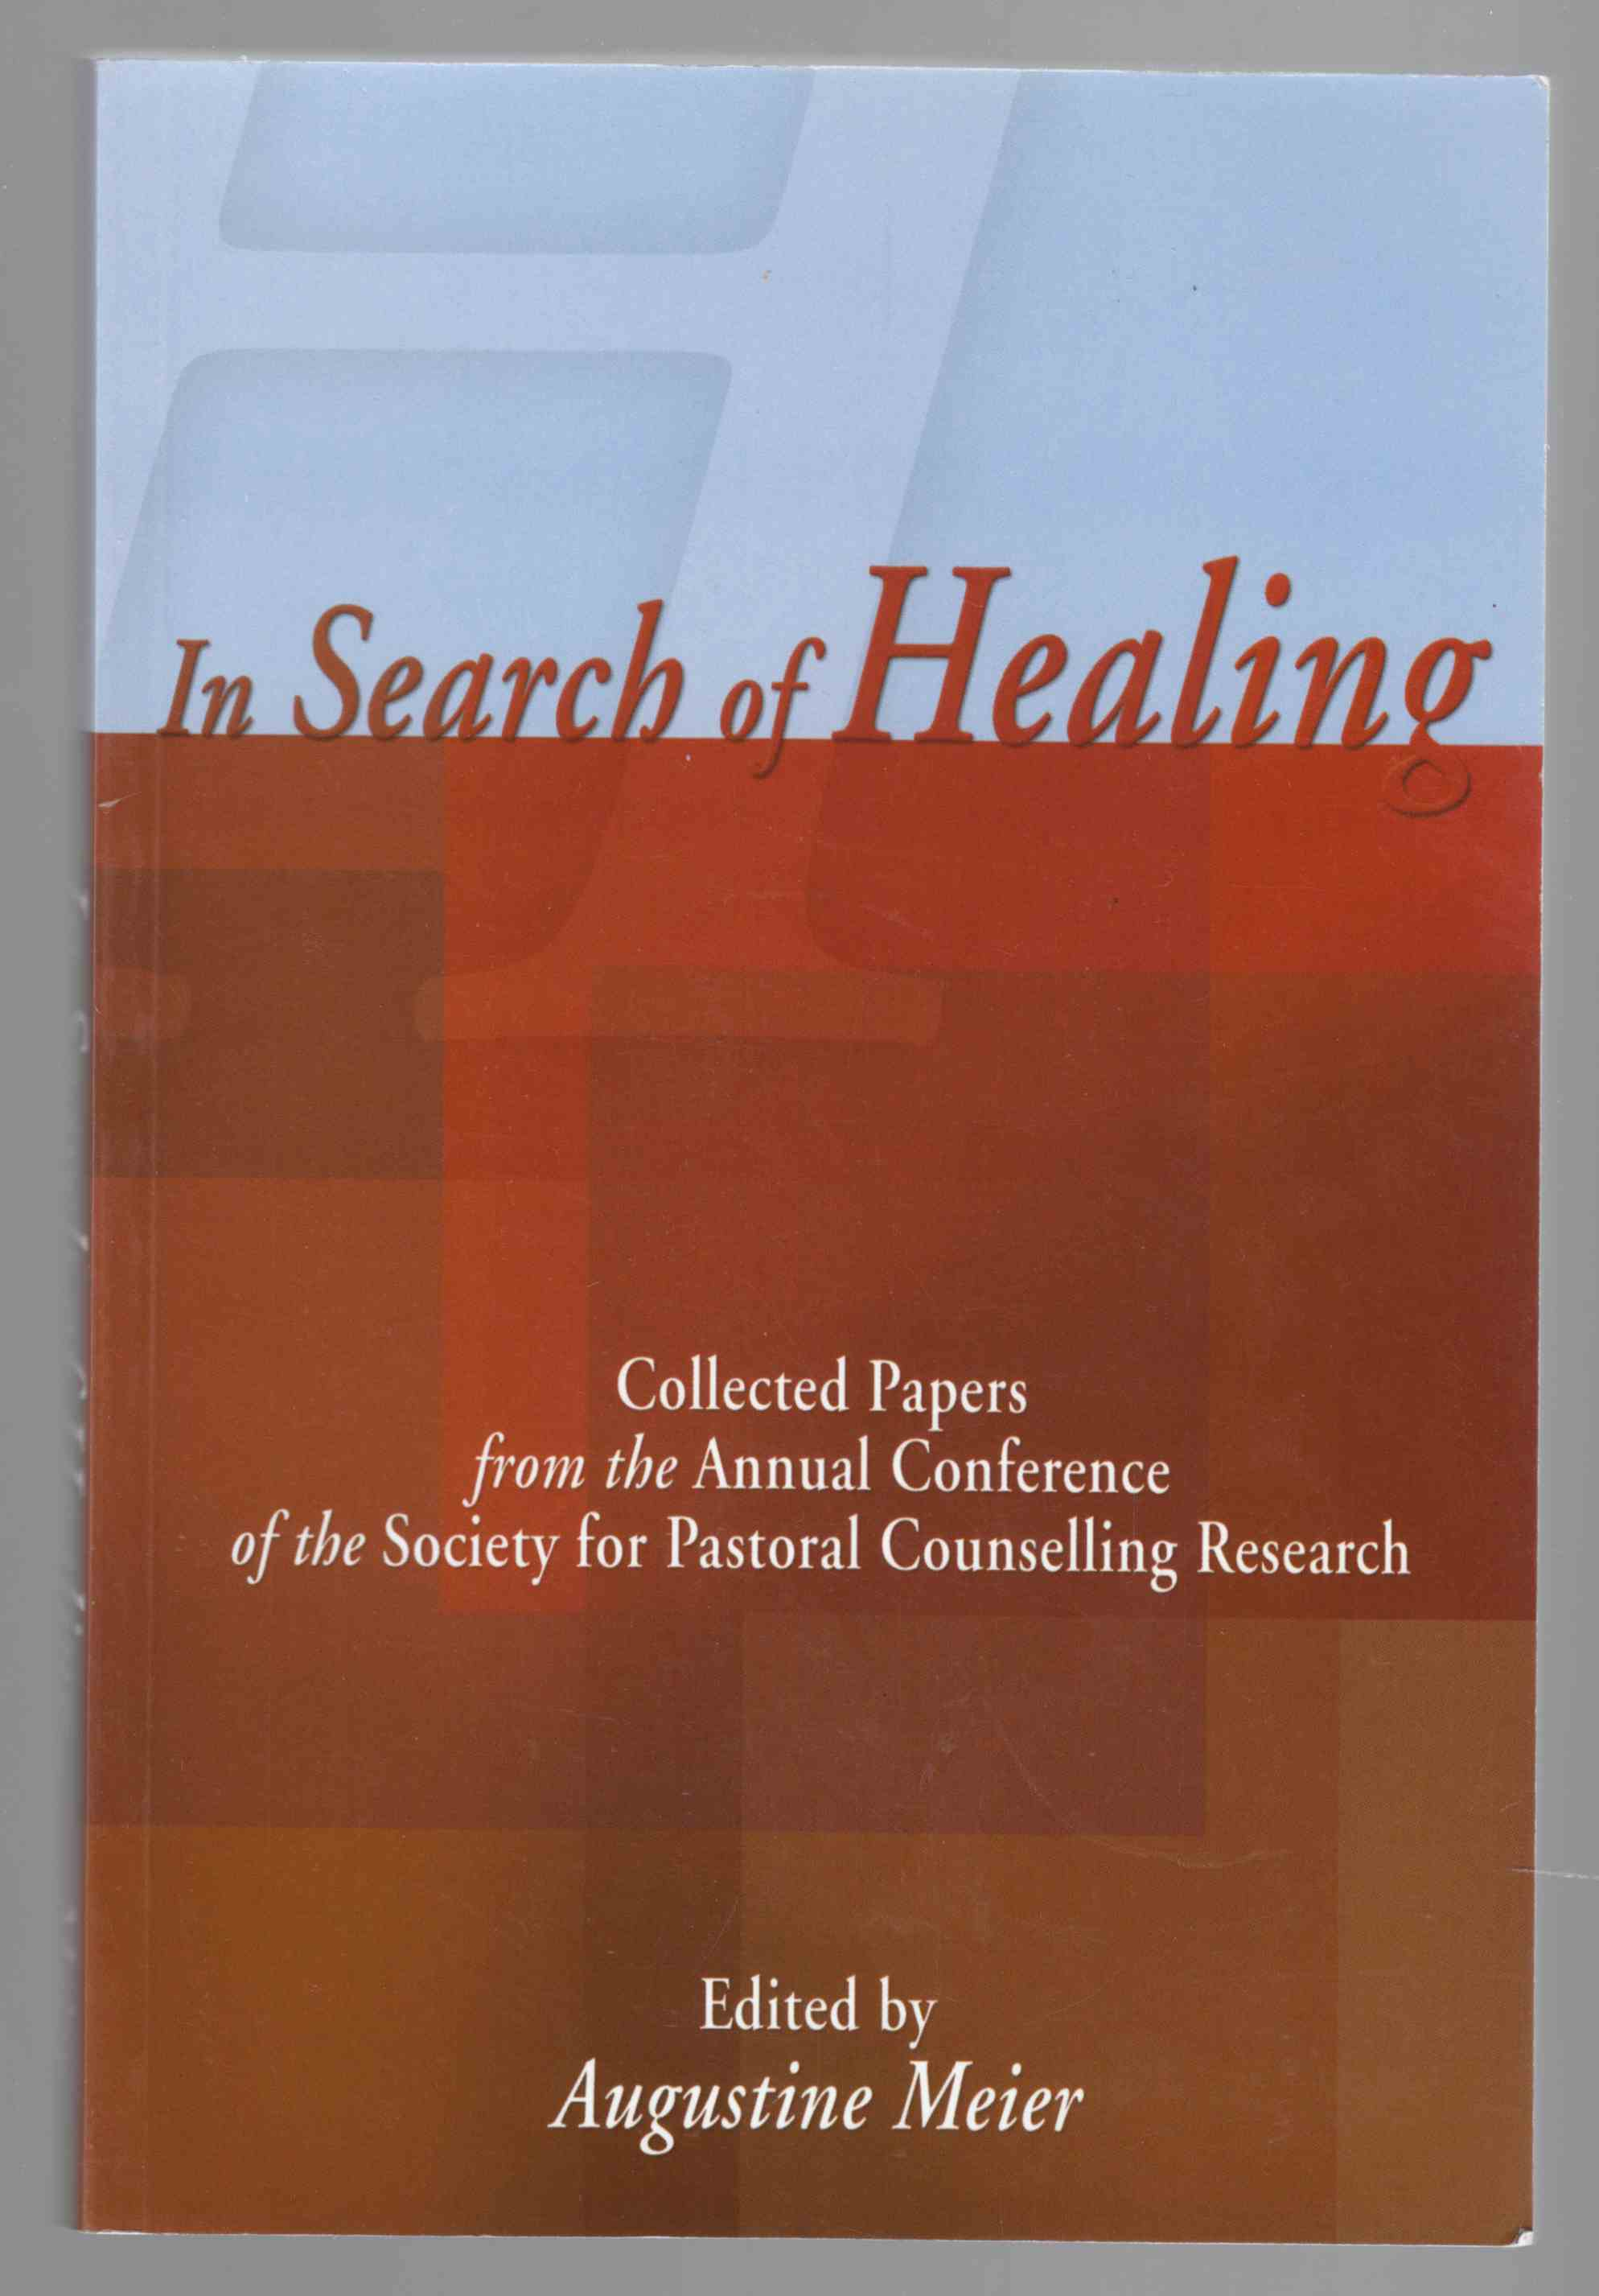 Image for In Search of Healing Collected Papers from the Annual Conference of the Society for Pastoral Counselling Research, 1994 to 1999